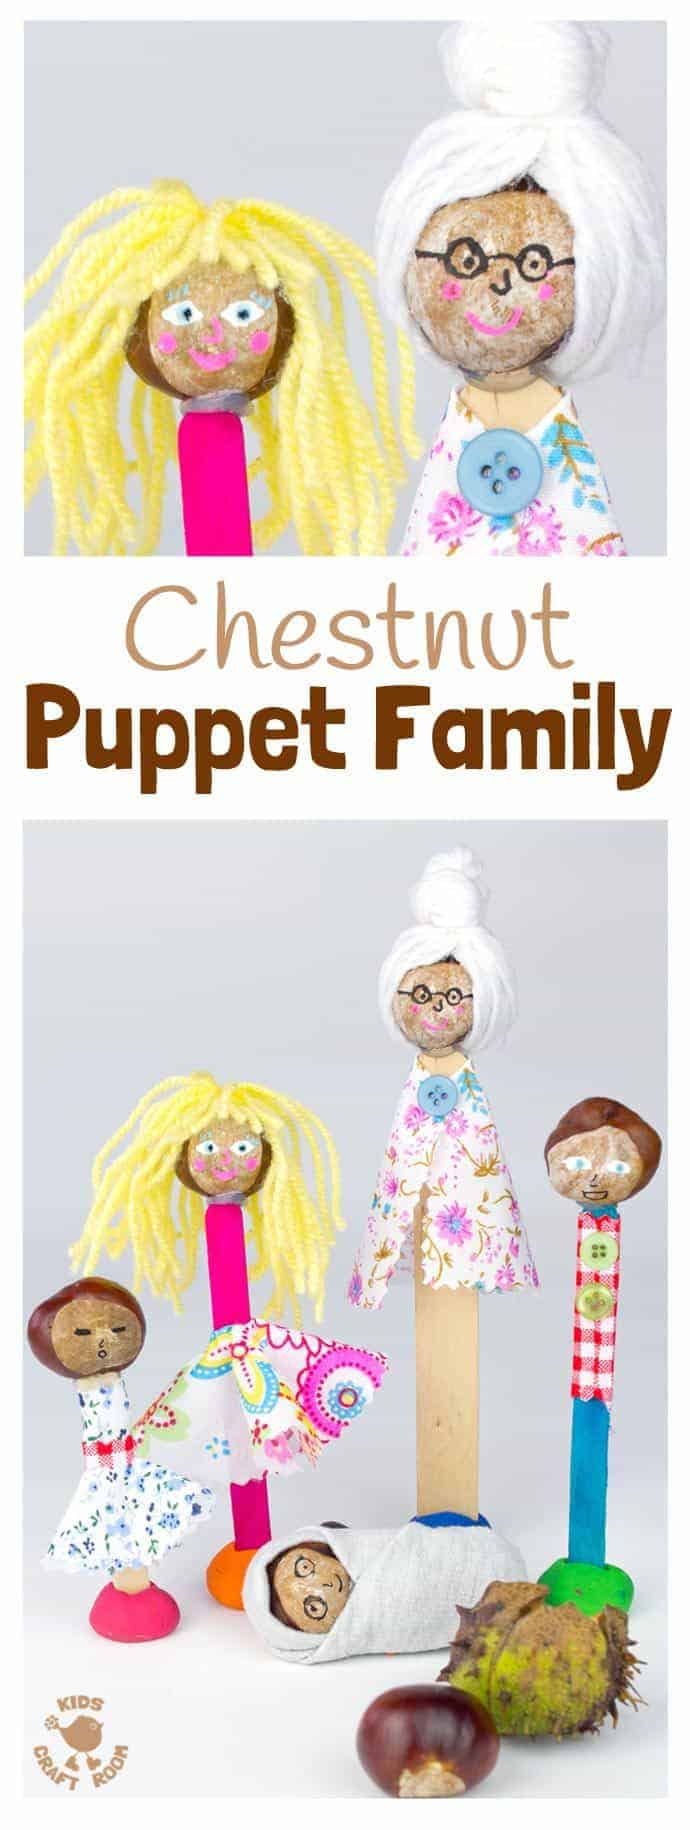 HOMEMADE PUPPETS CHESTNUT CRAFT - Make a Puppet Family with this fun and creative chestnut craft for kids. Chestnut puppets give kids hours of imaginative play & story telling. (buckeye craft/ conker craft)